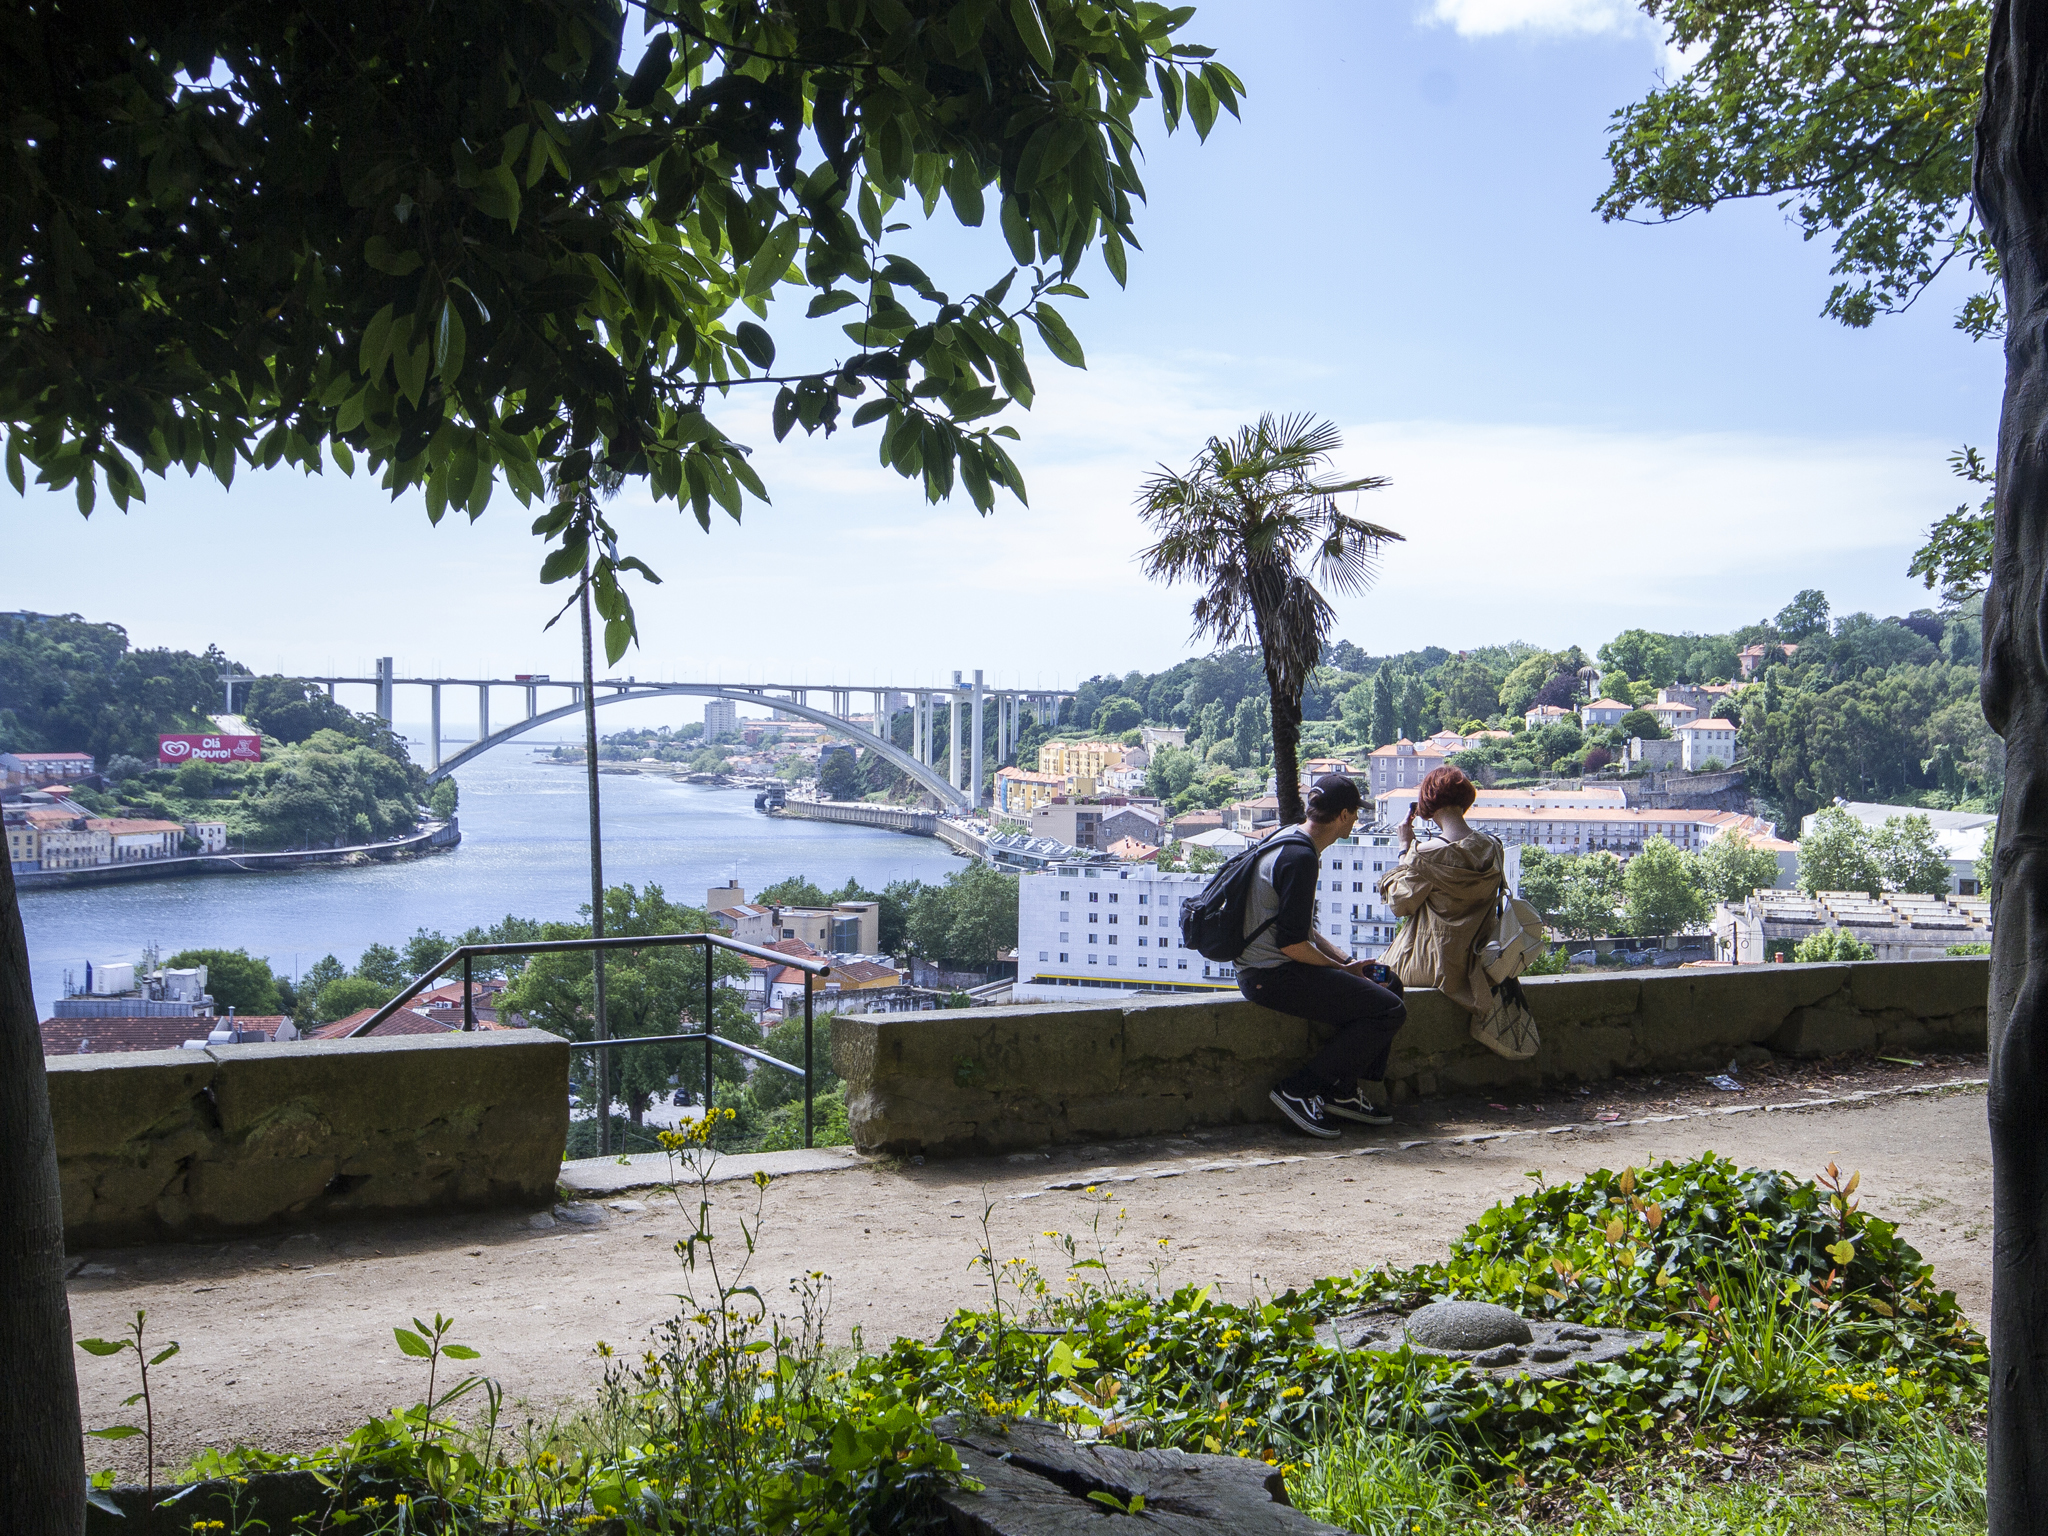 The best parks and gardens in Porto